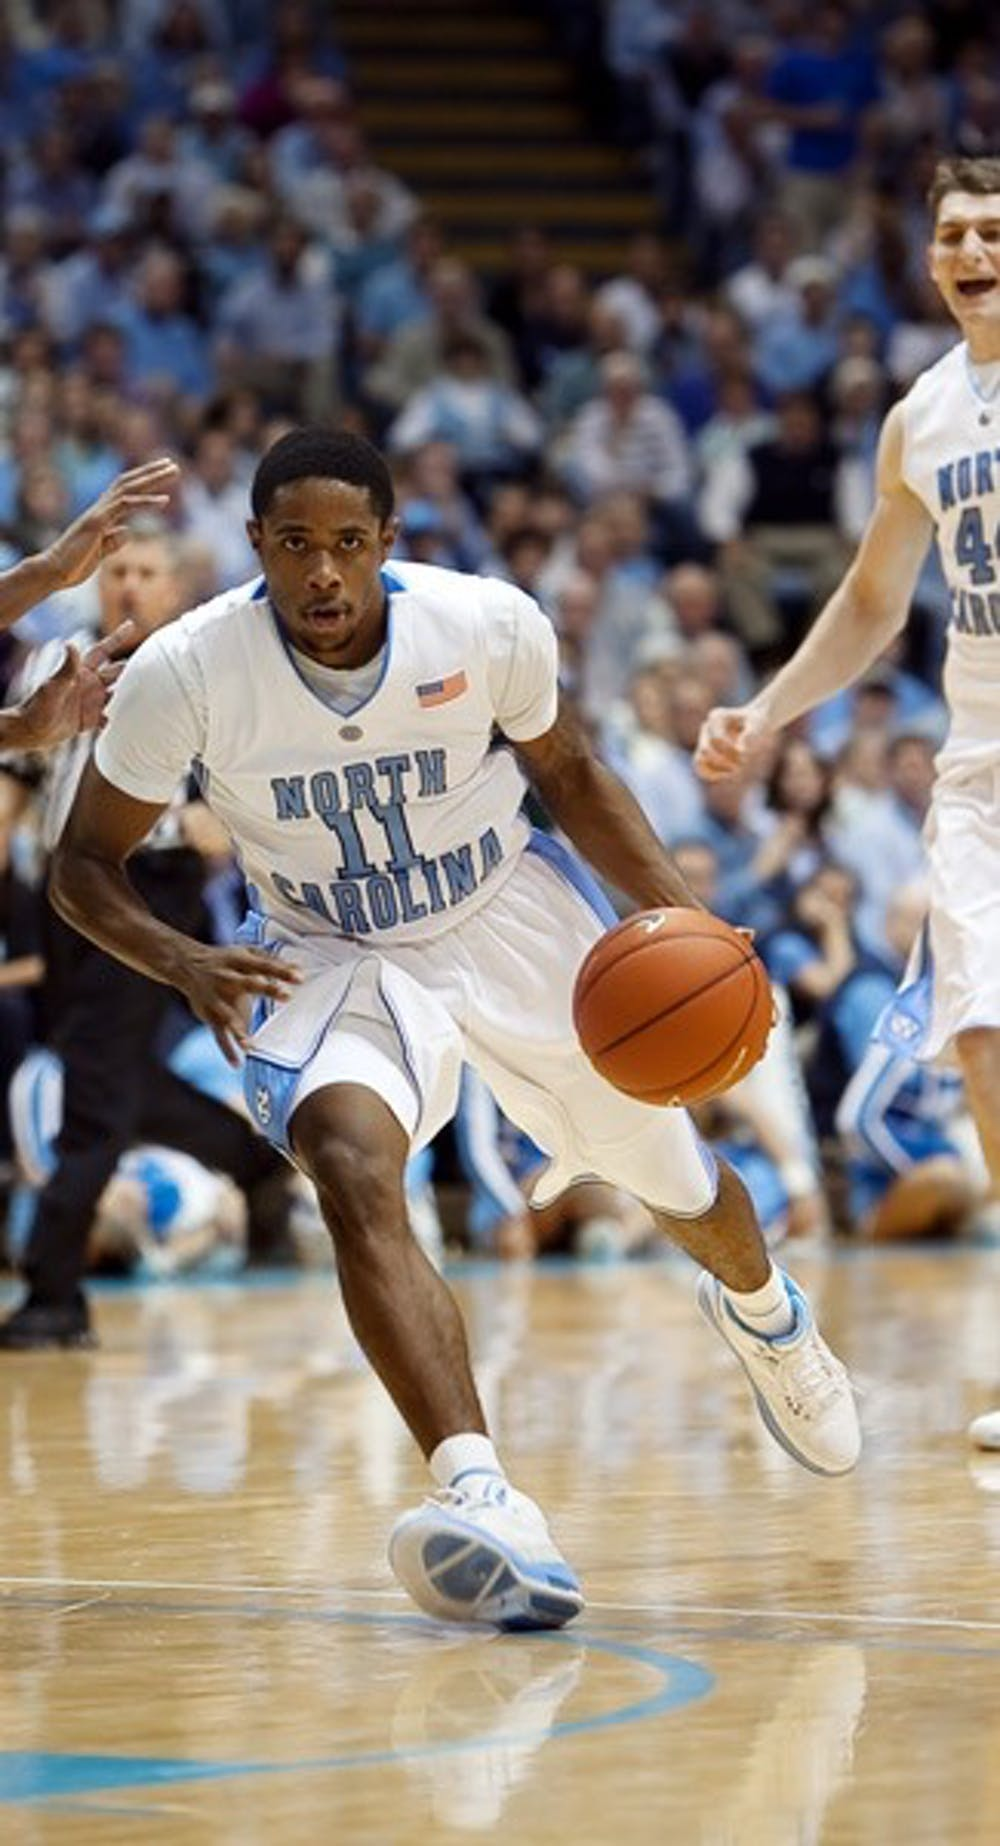 Sophomore point guard Larry Drew II had a career-high 18 points and six assists on Tuesday night. DTH/Phong Dinh